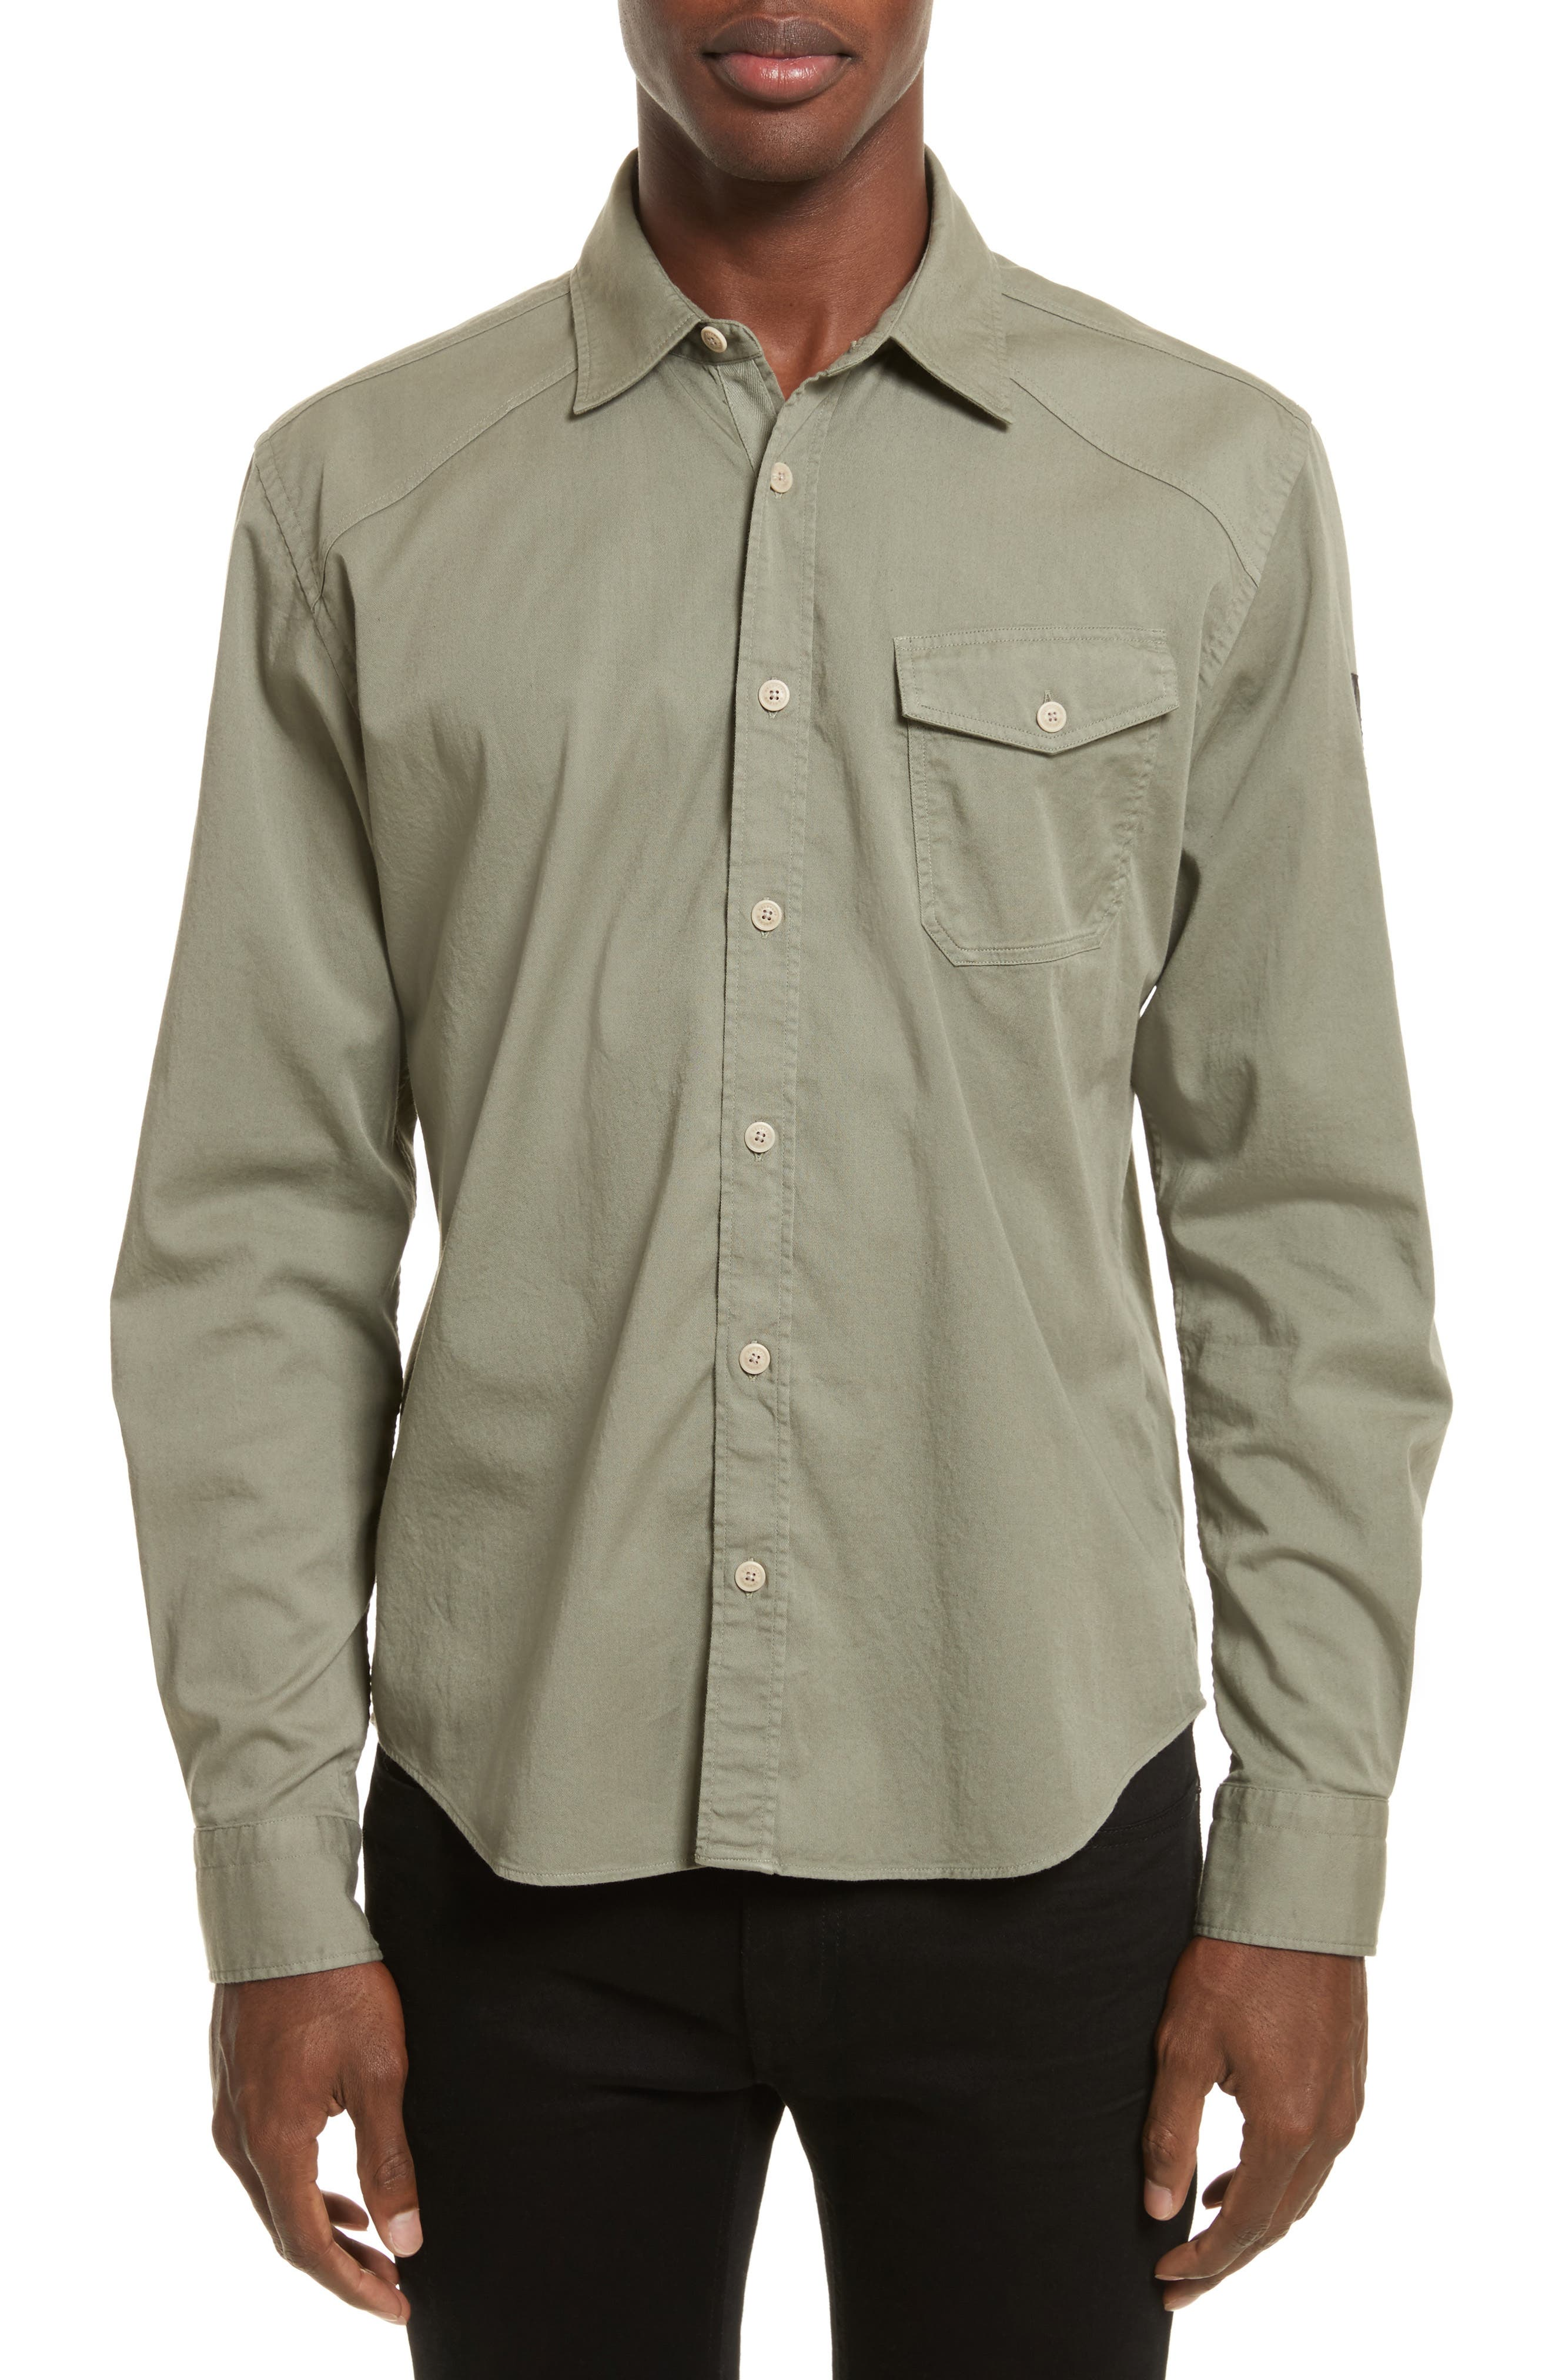 Steadway Extra Slim Fit Sport Shirt,                             Main thumbnail 1, color,